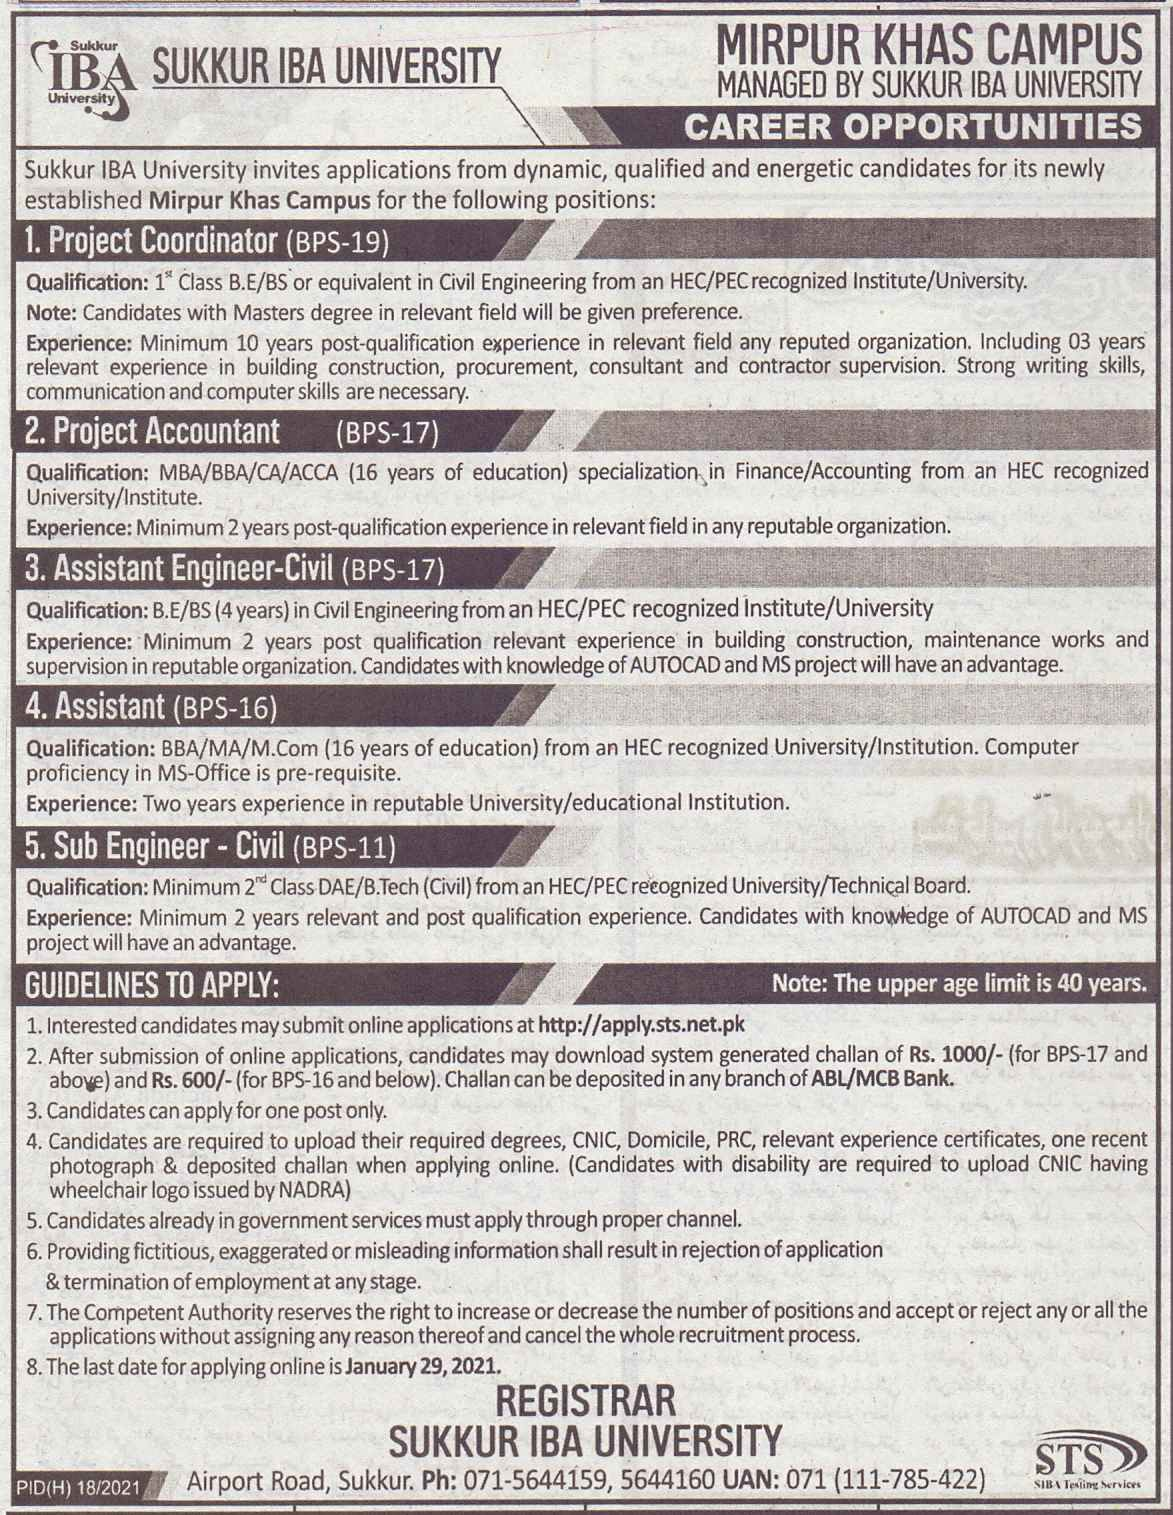 Sukkur IBA University Jobs 2021 for Project Coordinator, Project Accountant, Coordinator, Accountant, Assistant Engineer, Sub Engineer, Assistant and more